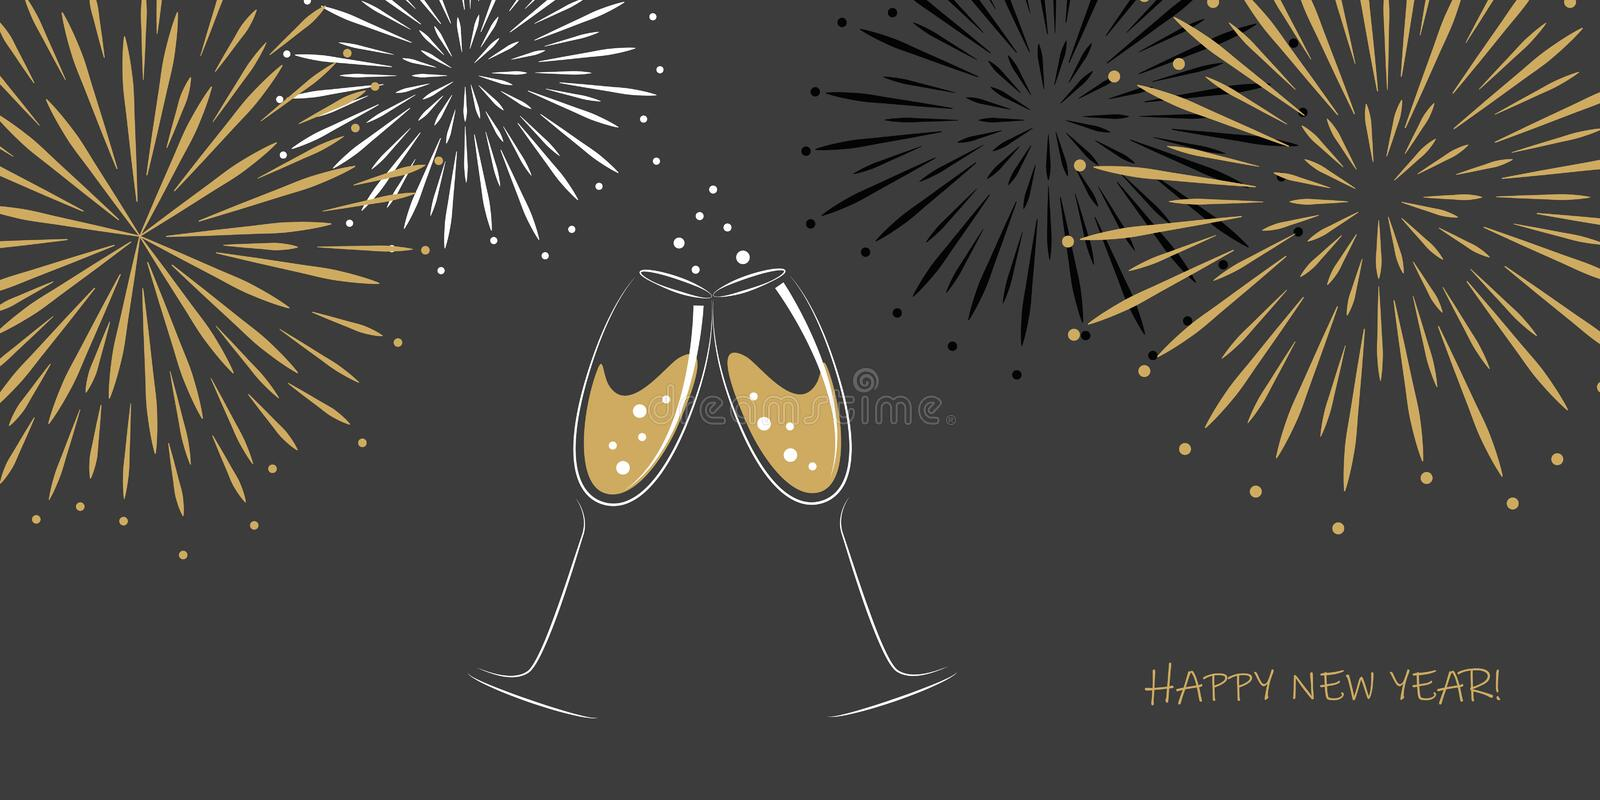 Happy new year greeting card two champagne glasses and fireworks on a grey background stock illustration